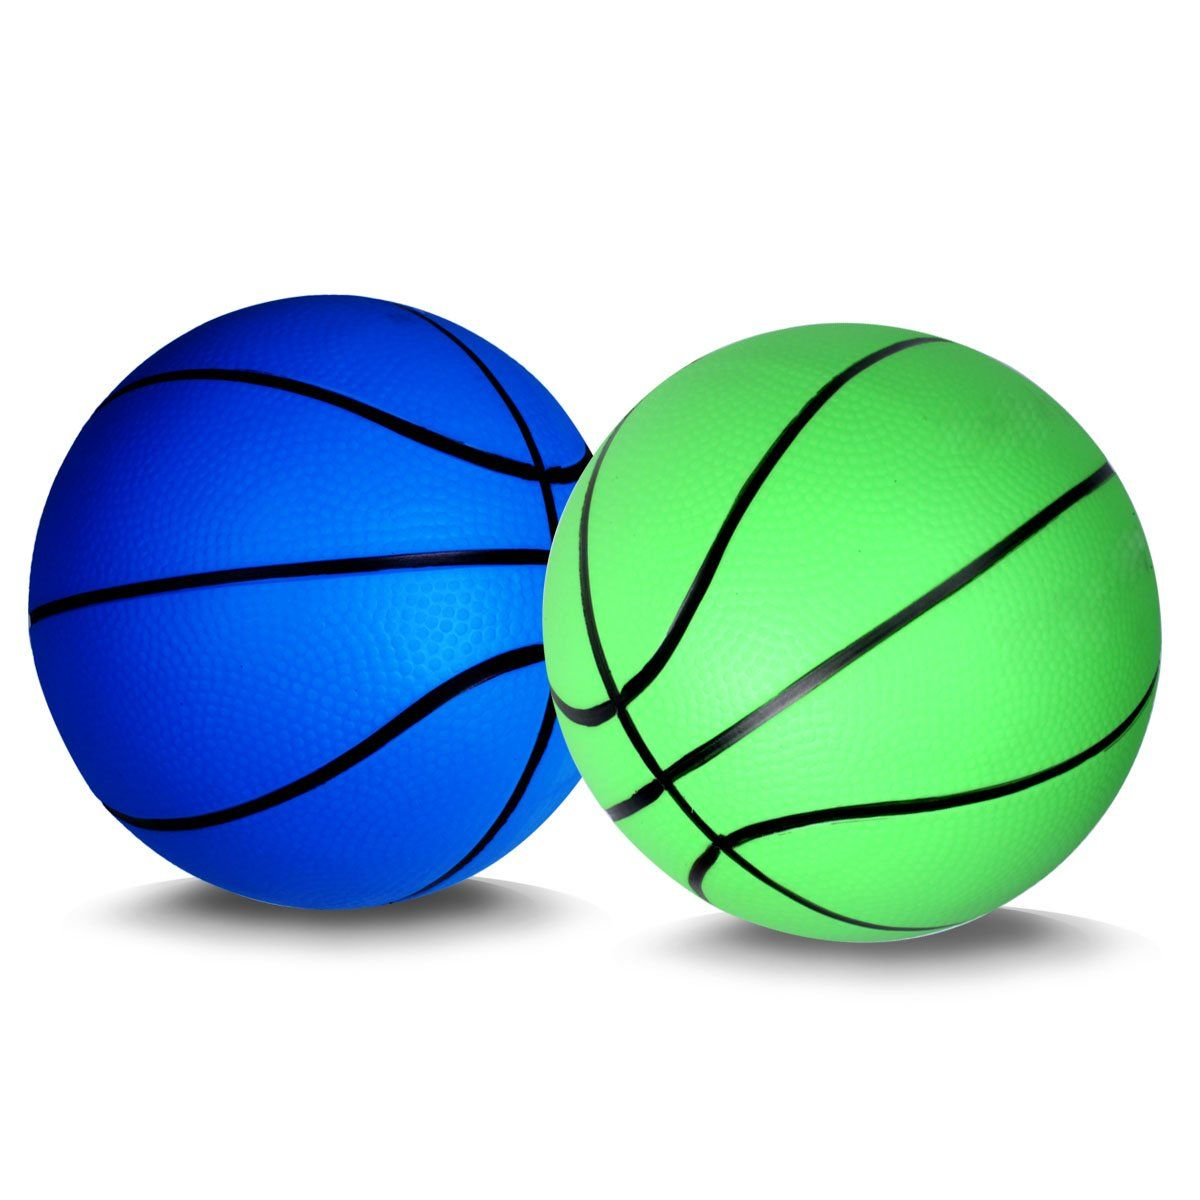 Mini Basketball For Kids Basketballs Baby Toys Ball Indoor Play Game Balls 5 5 Inch 2pcs Green Blue Designe Baby Ball Toy Mini Basketballs Basketball Baby